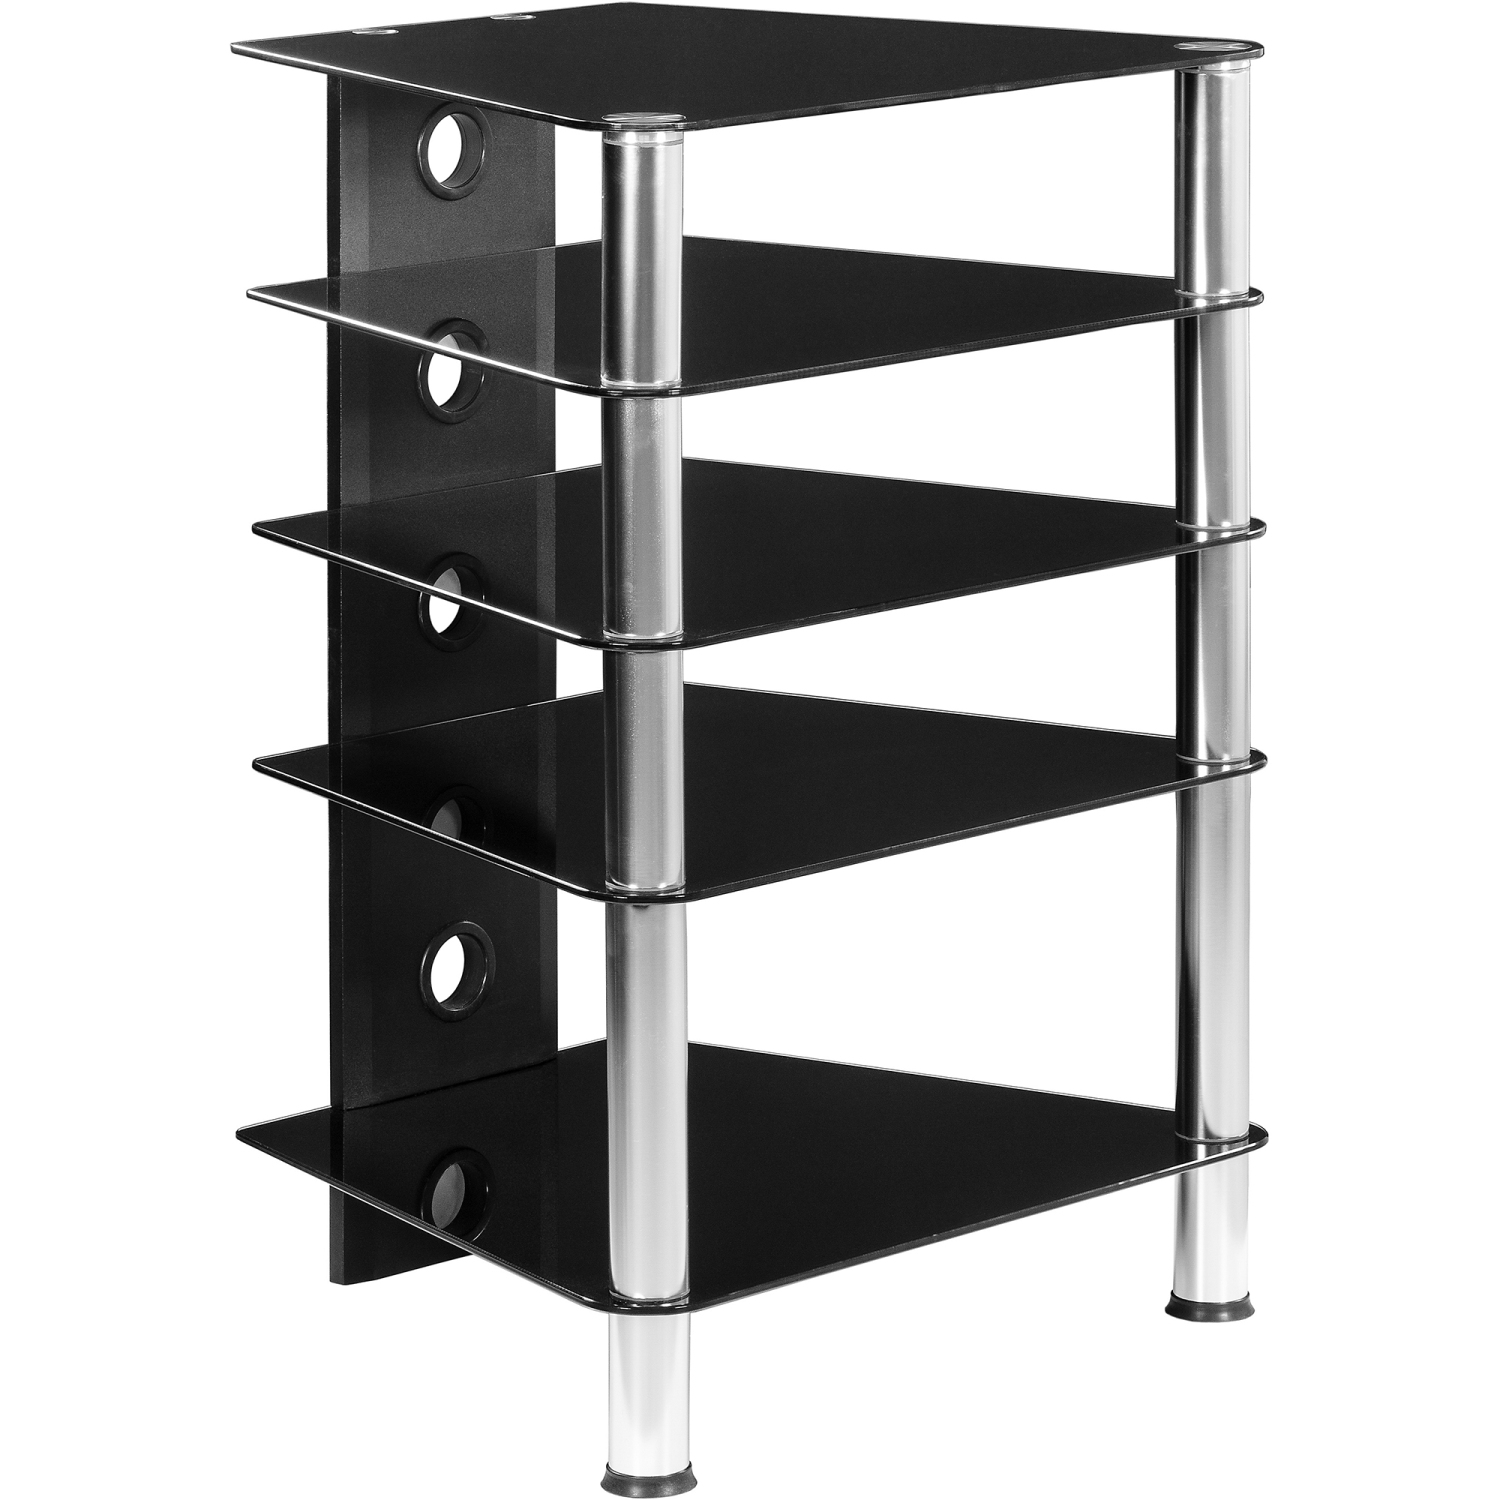 stilista tv rack schrank st nder m bel regal hifi audio. Black Bedroom Furniture Sets. Home Design Ideas